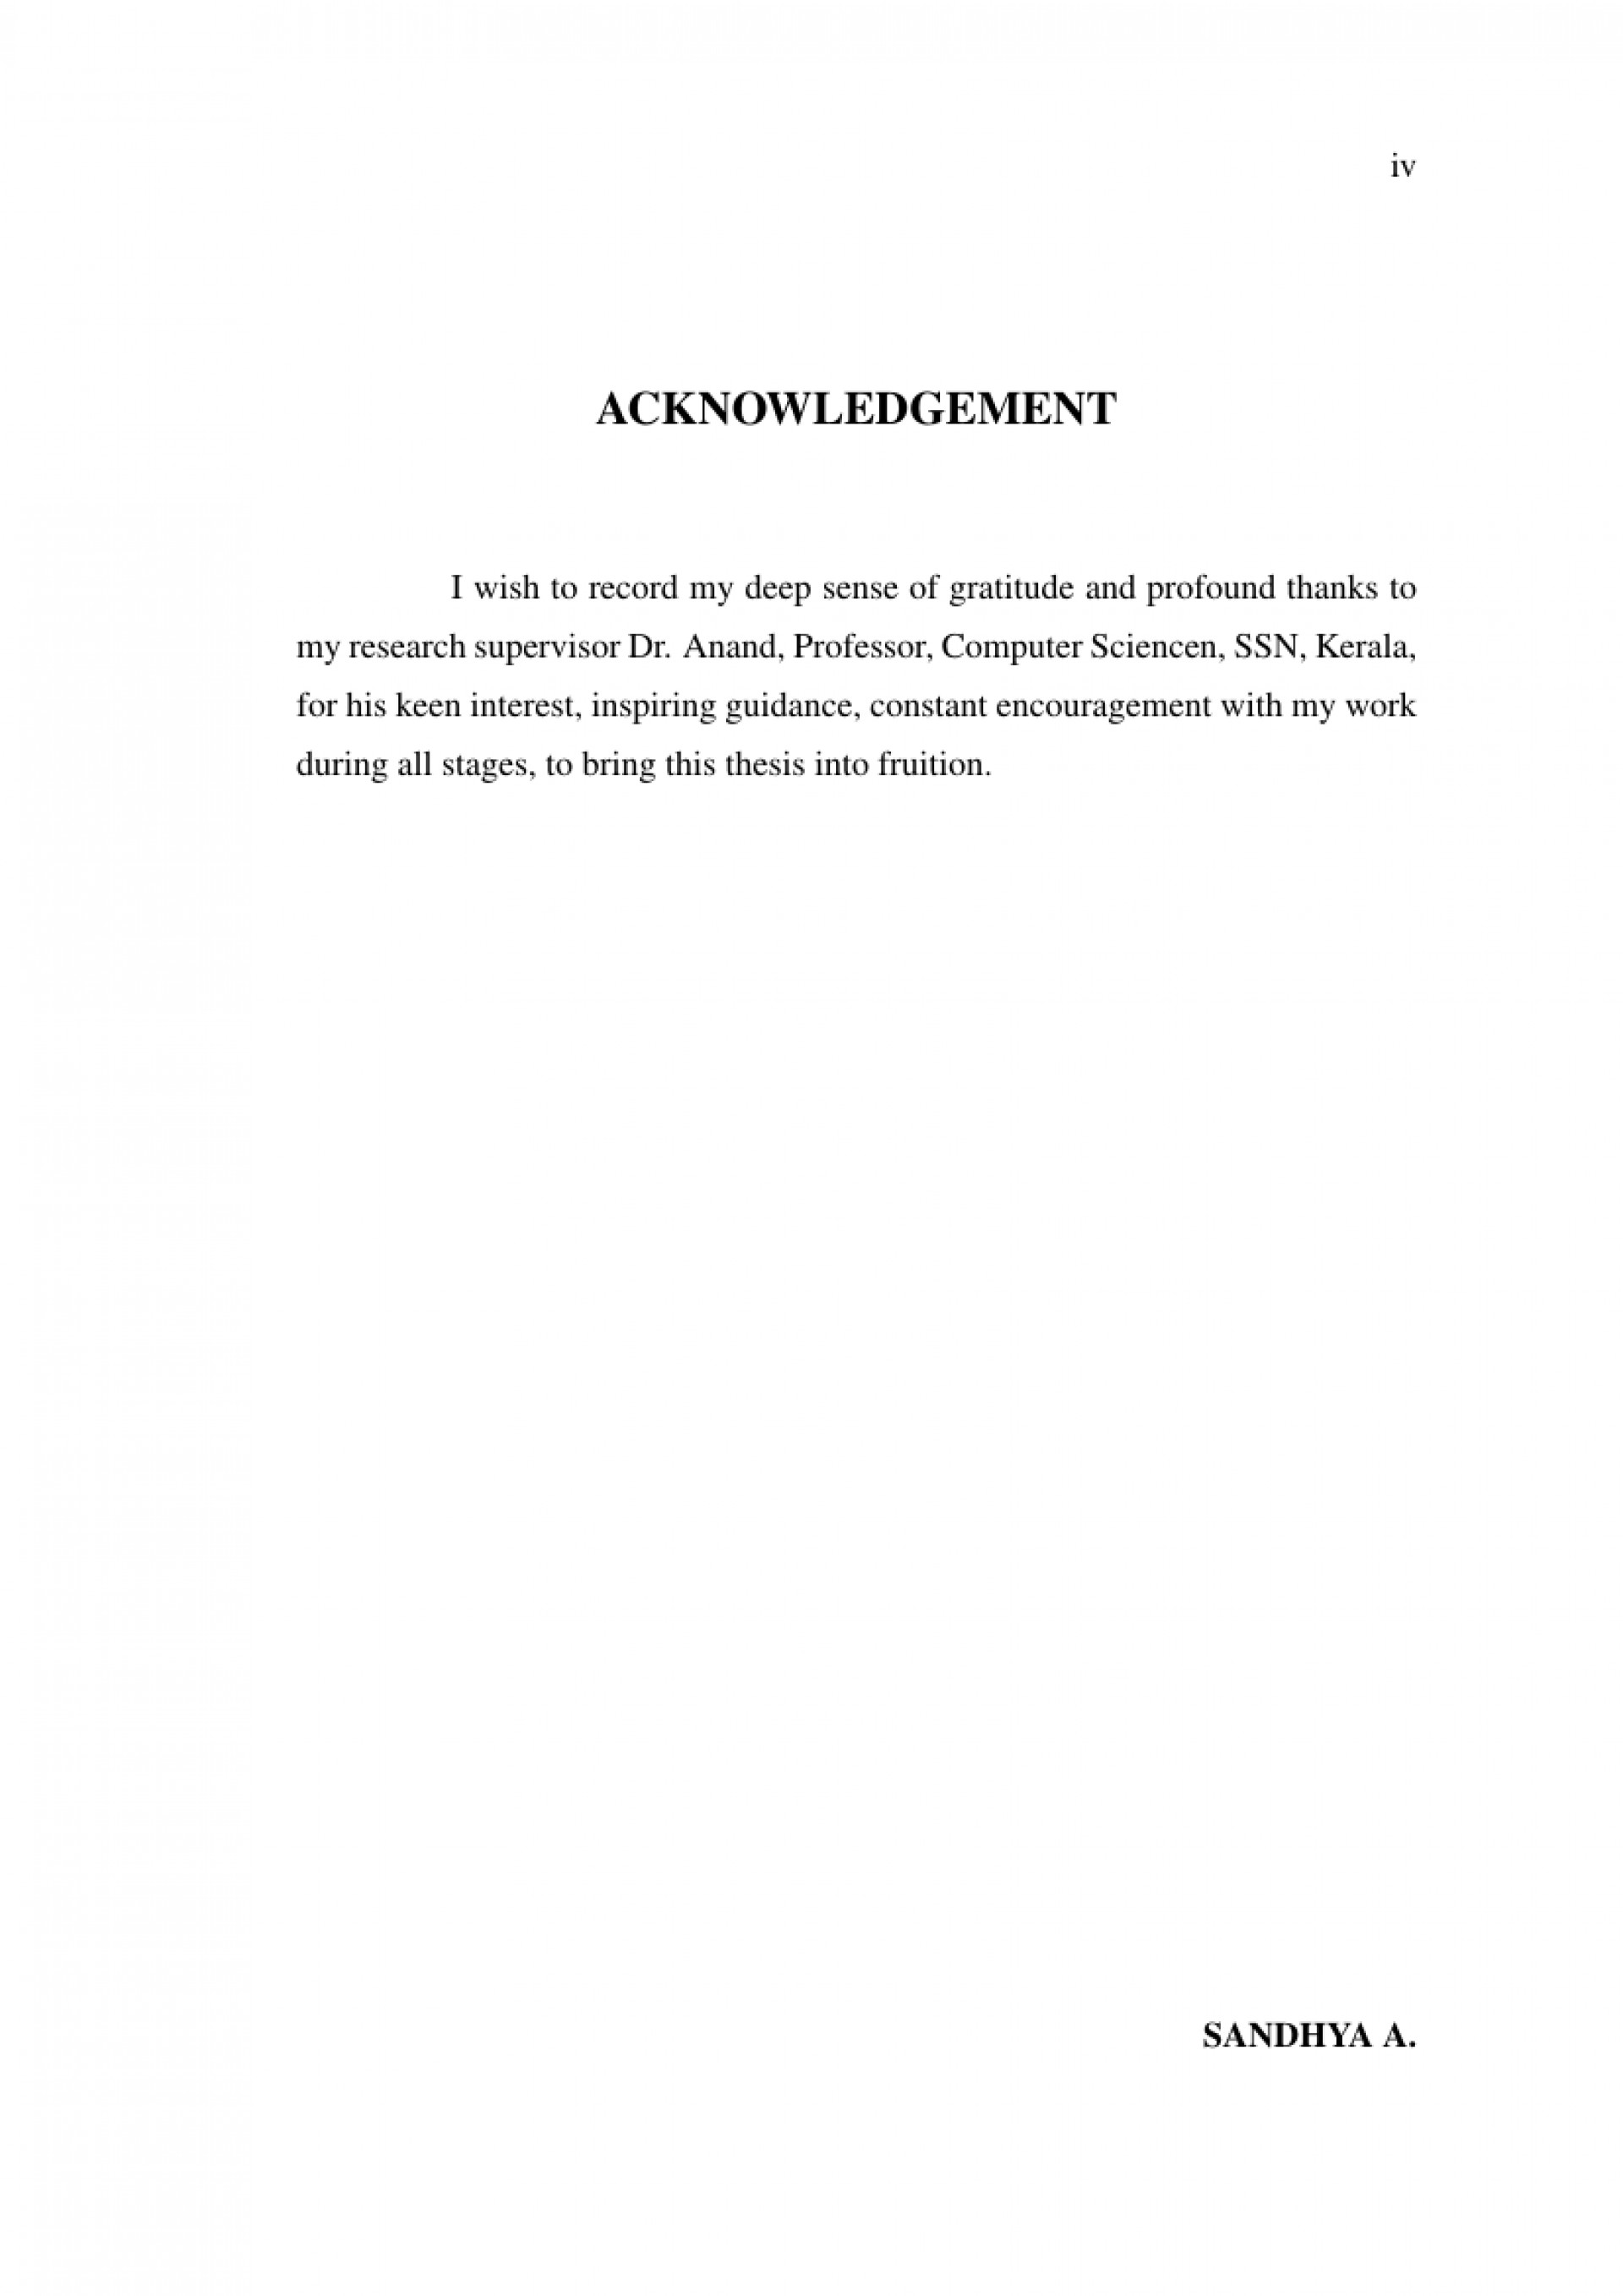 016 Research Paper Acknowledgement Example For Article Rare Pdf 1920